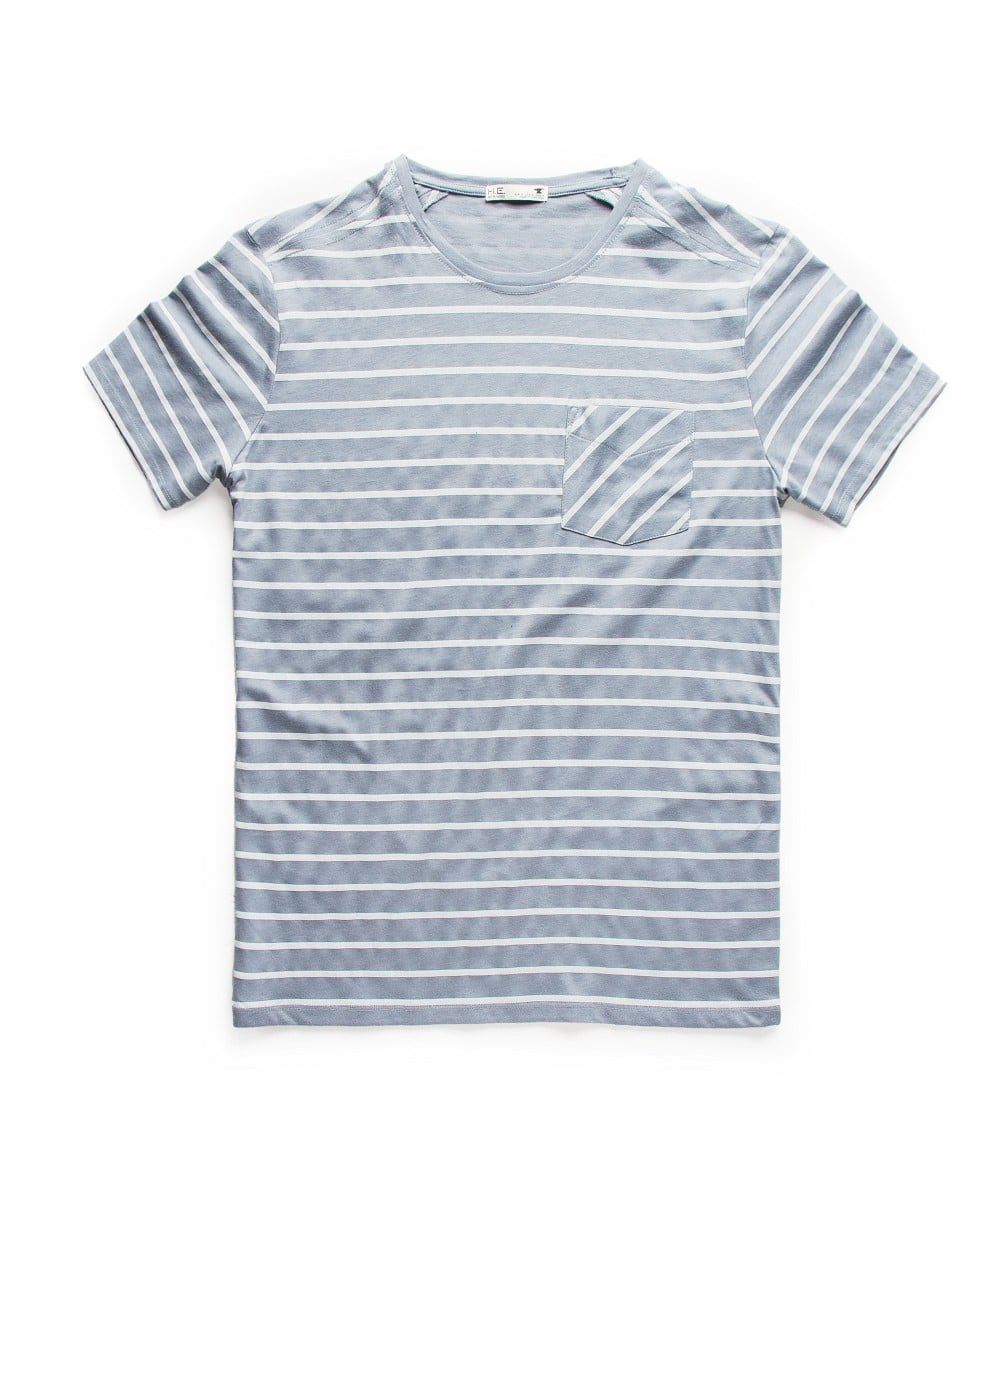 Chest-pocket striped t-shirt | MANGO MAN